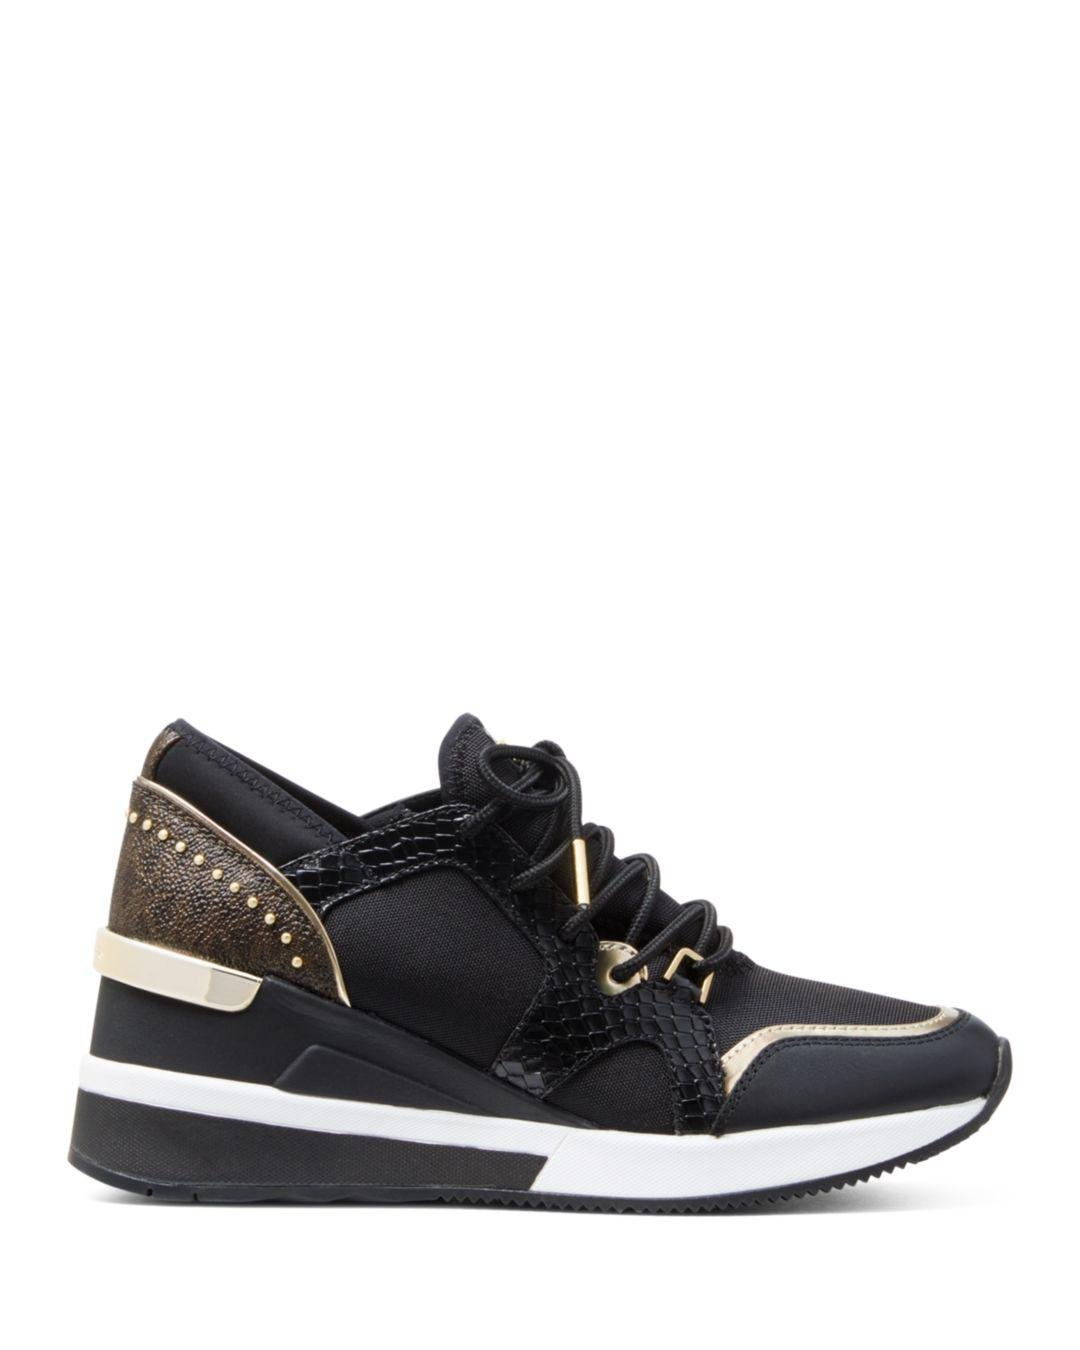 3a3f24f8070a Lyst - Michael Kors Michael Liv Trainer Sneakers in Black